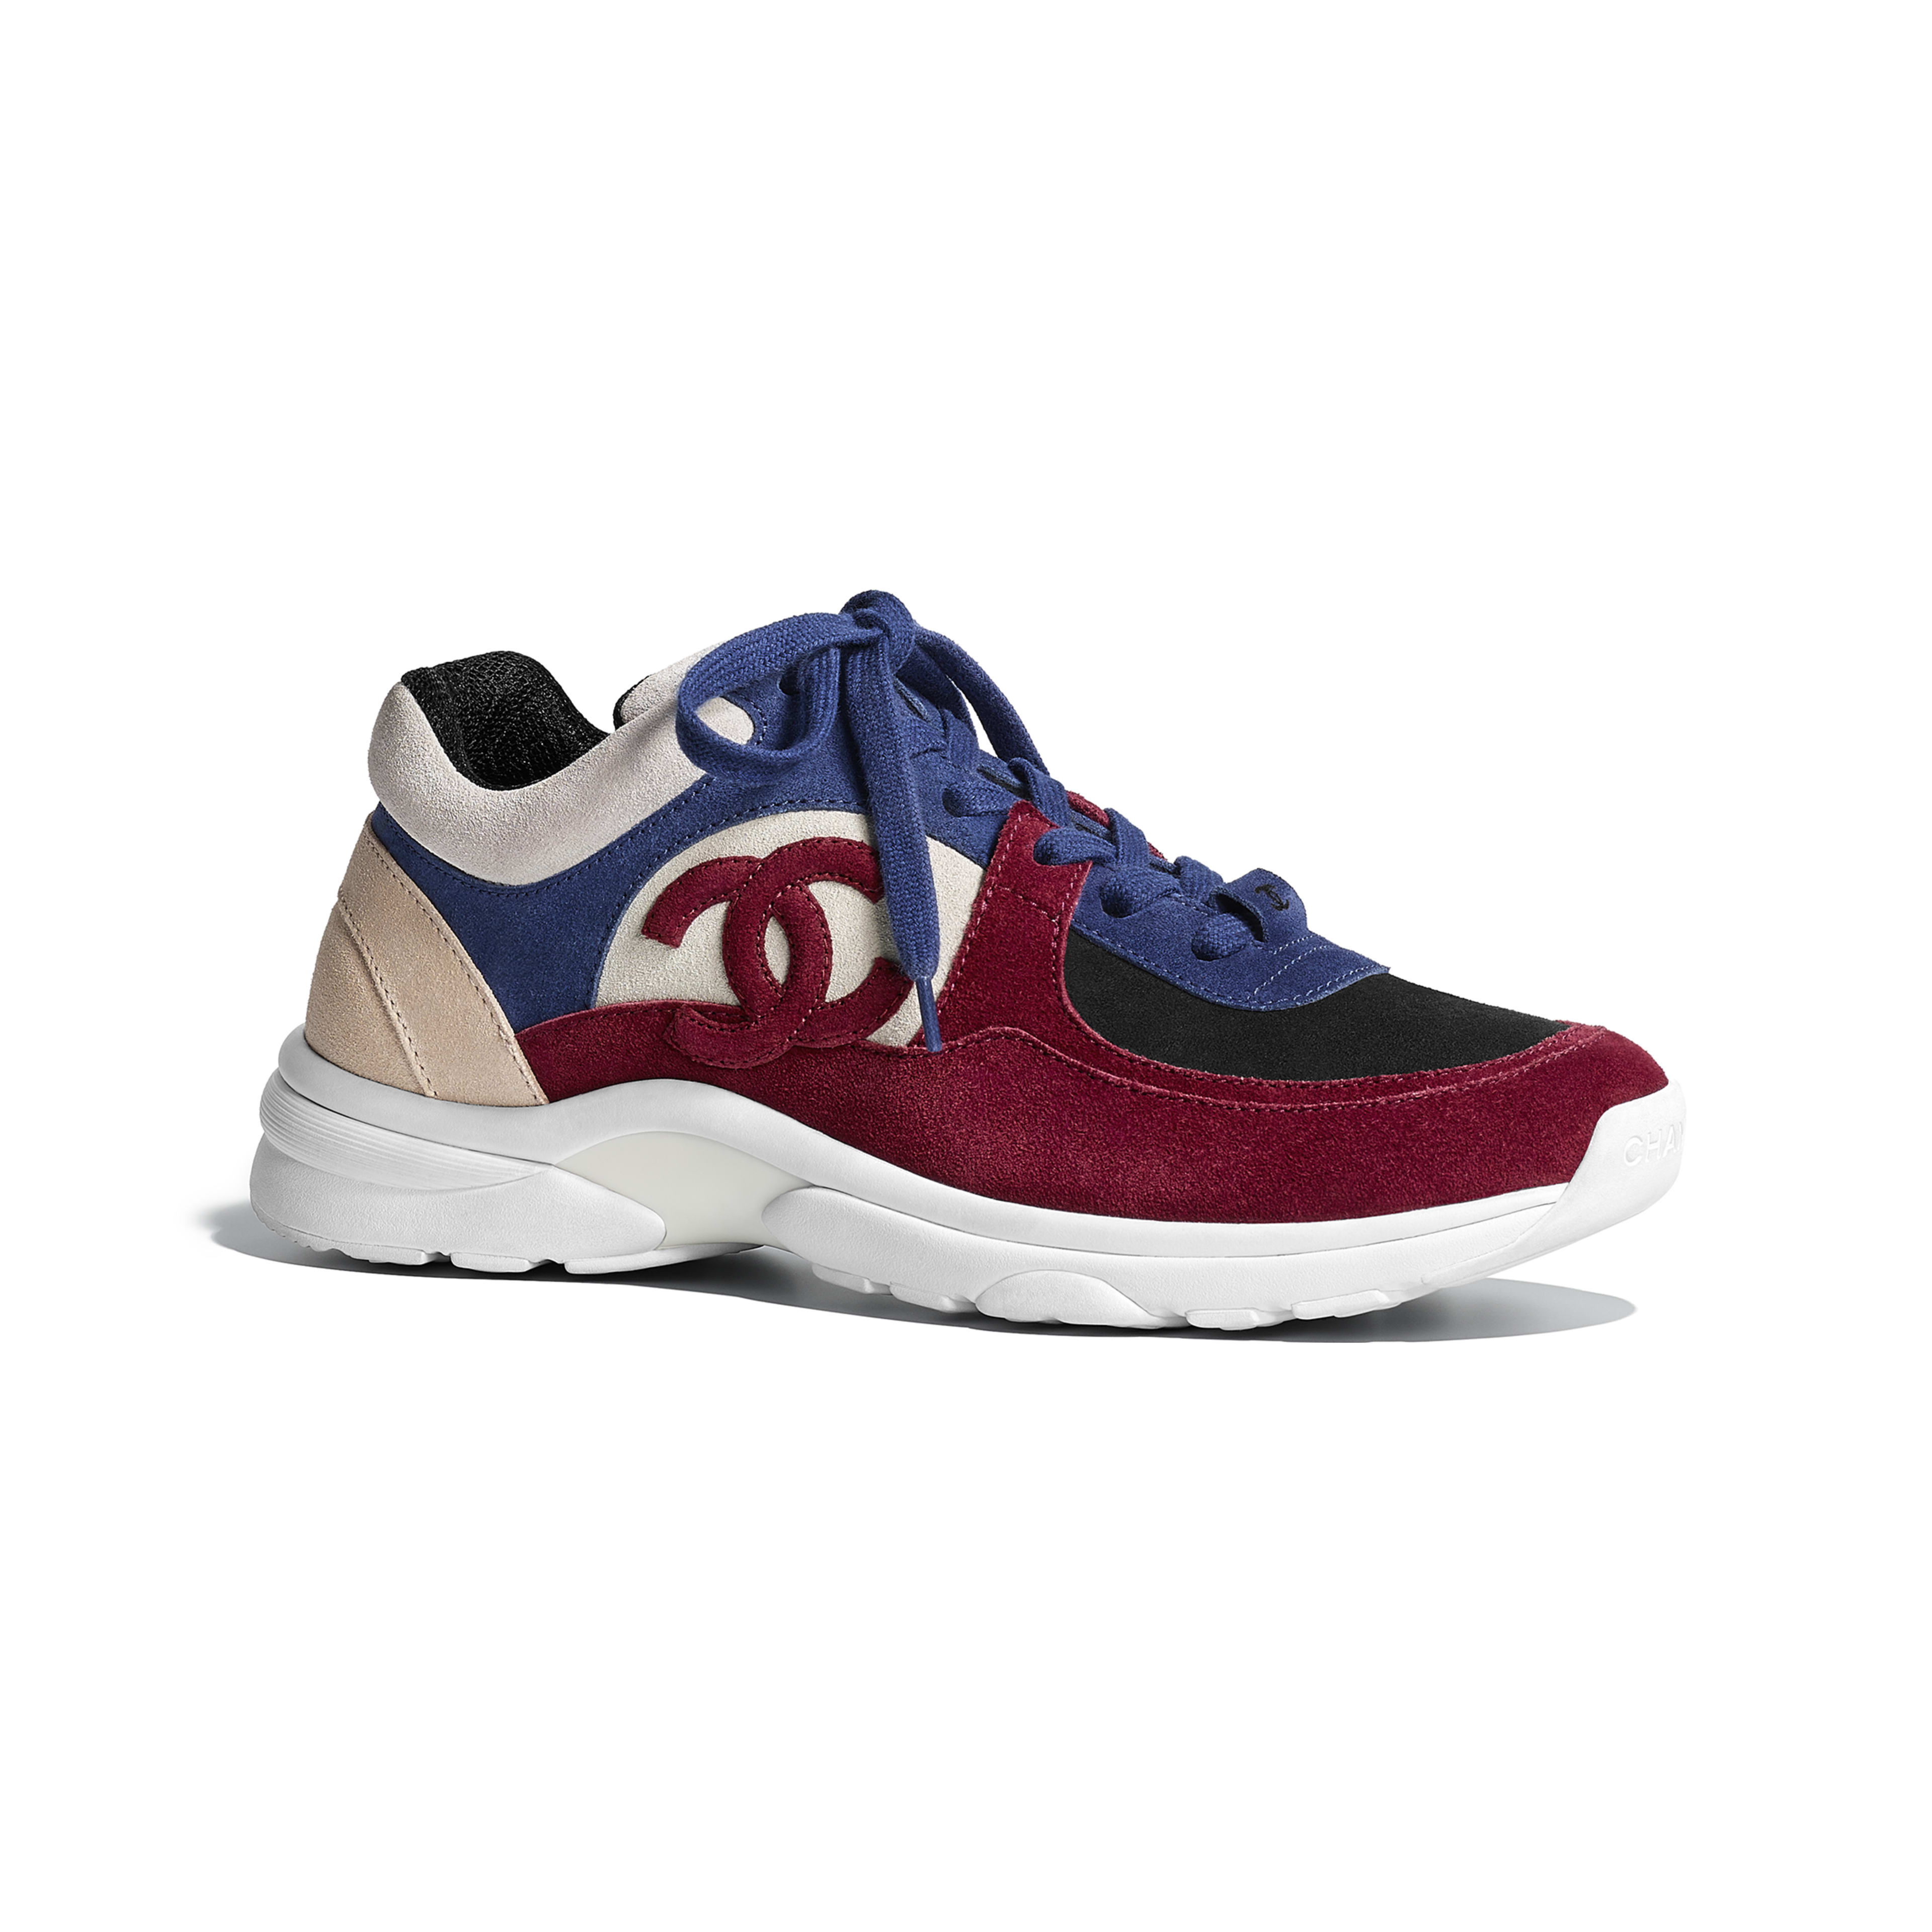 Sneakers - Navy Blue & Red - Suede Calfskin - Default view - see full sized version